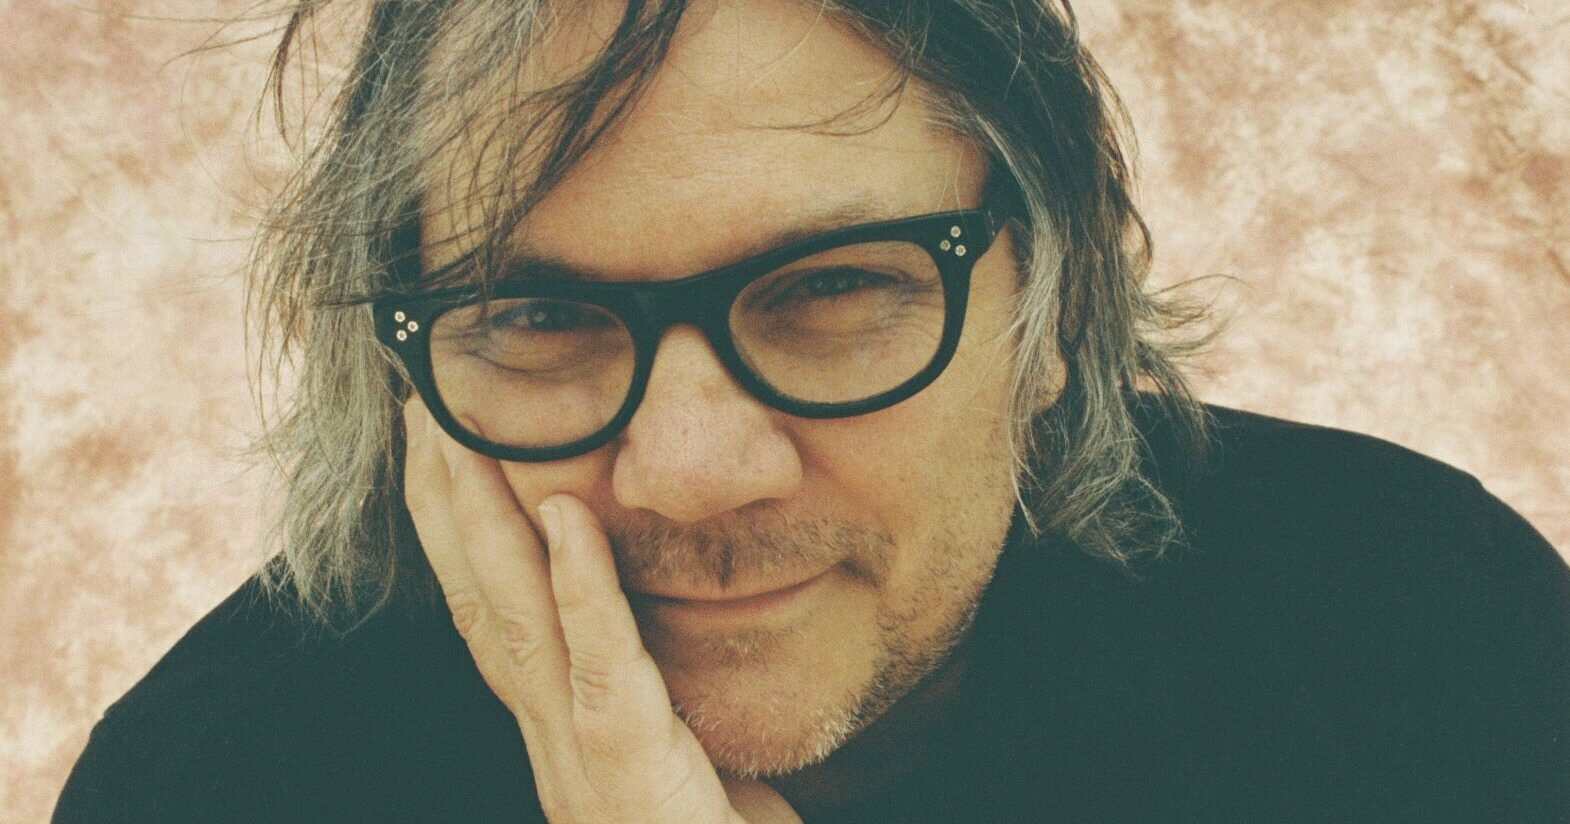 Jeff Tweedy Shares New Songs 'C'mon America' and 'UR-60 Unsent'